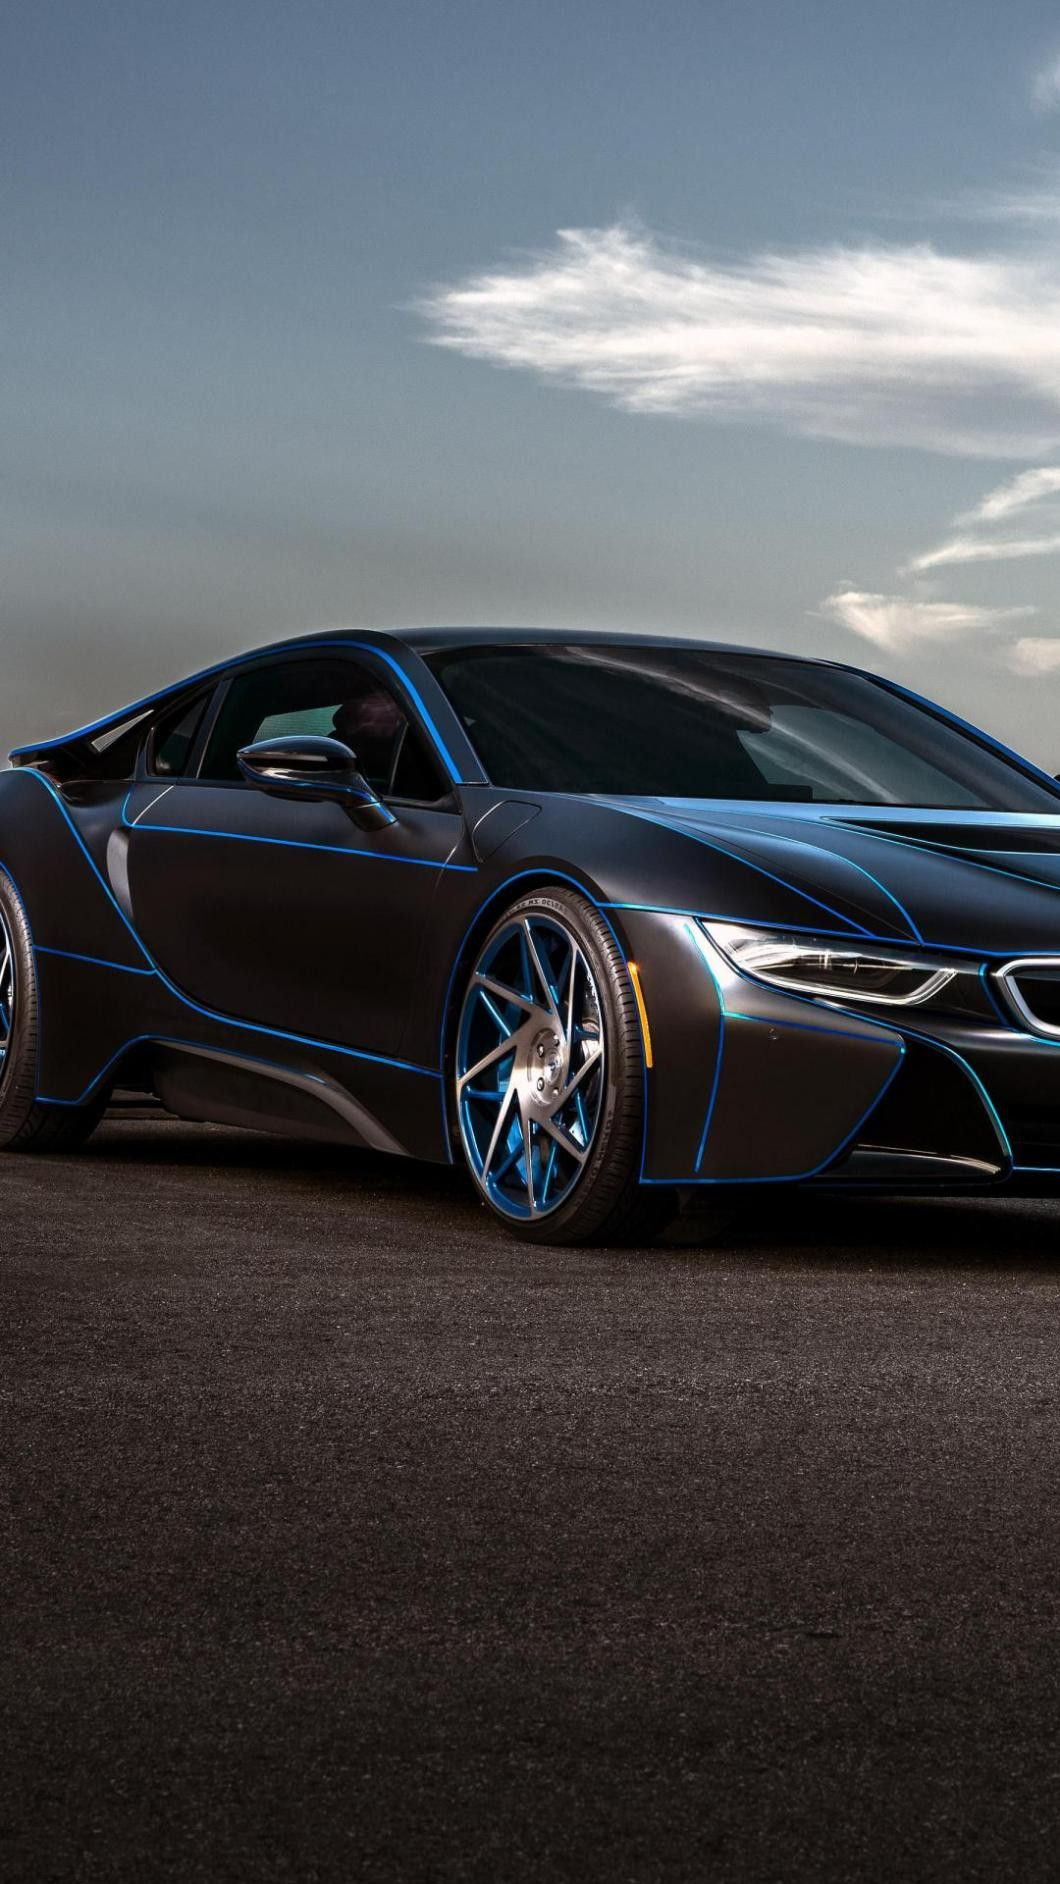 Bmw I8 White Hd Wallpaper Beautiful Ford Mustang Wallpaper Iphone